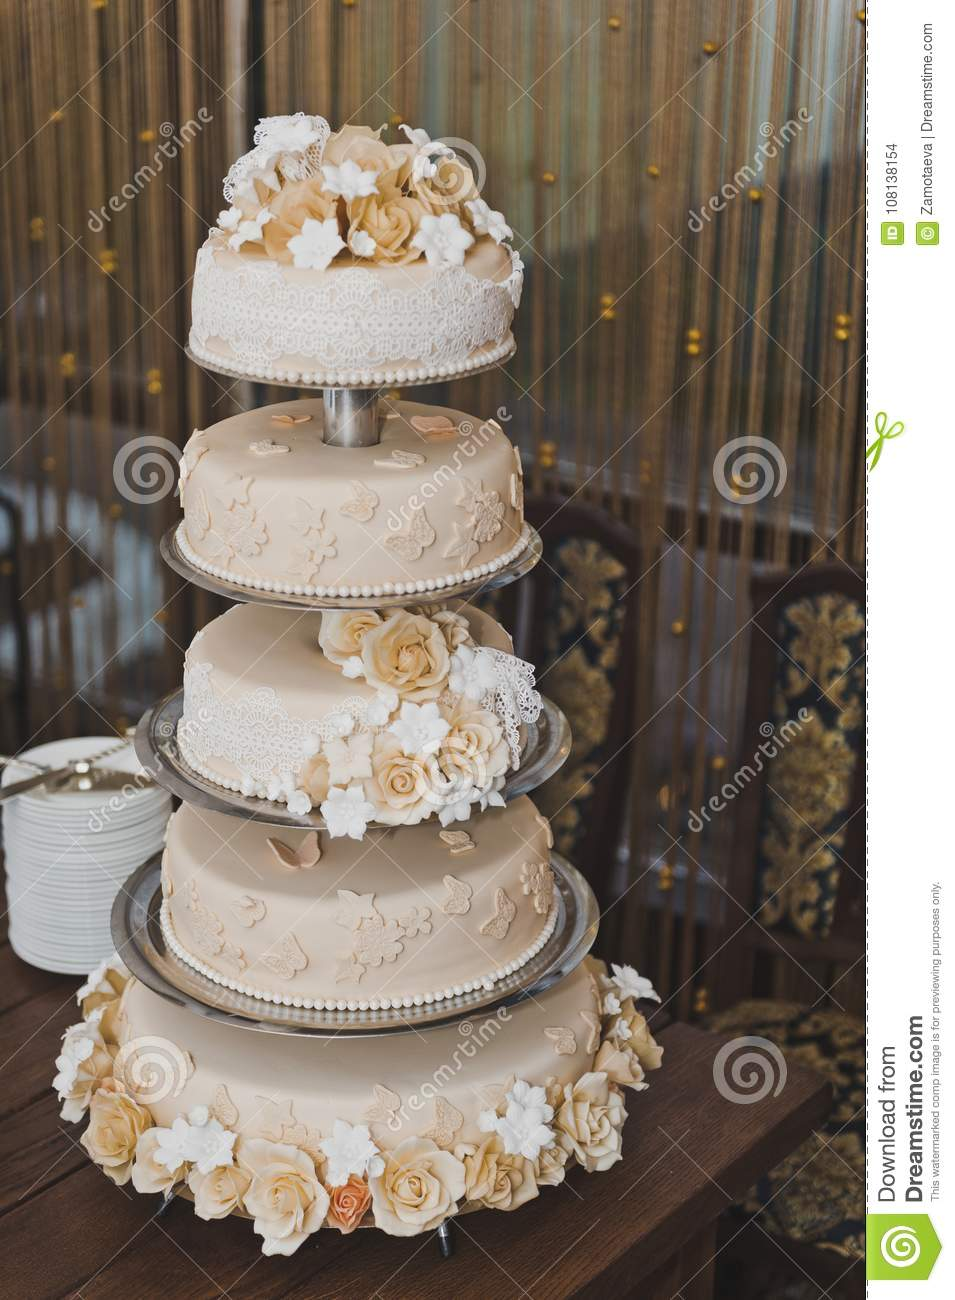 Cake In The 4th Floor On The Table Stock Photo Image Of Wedding